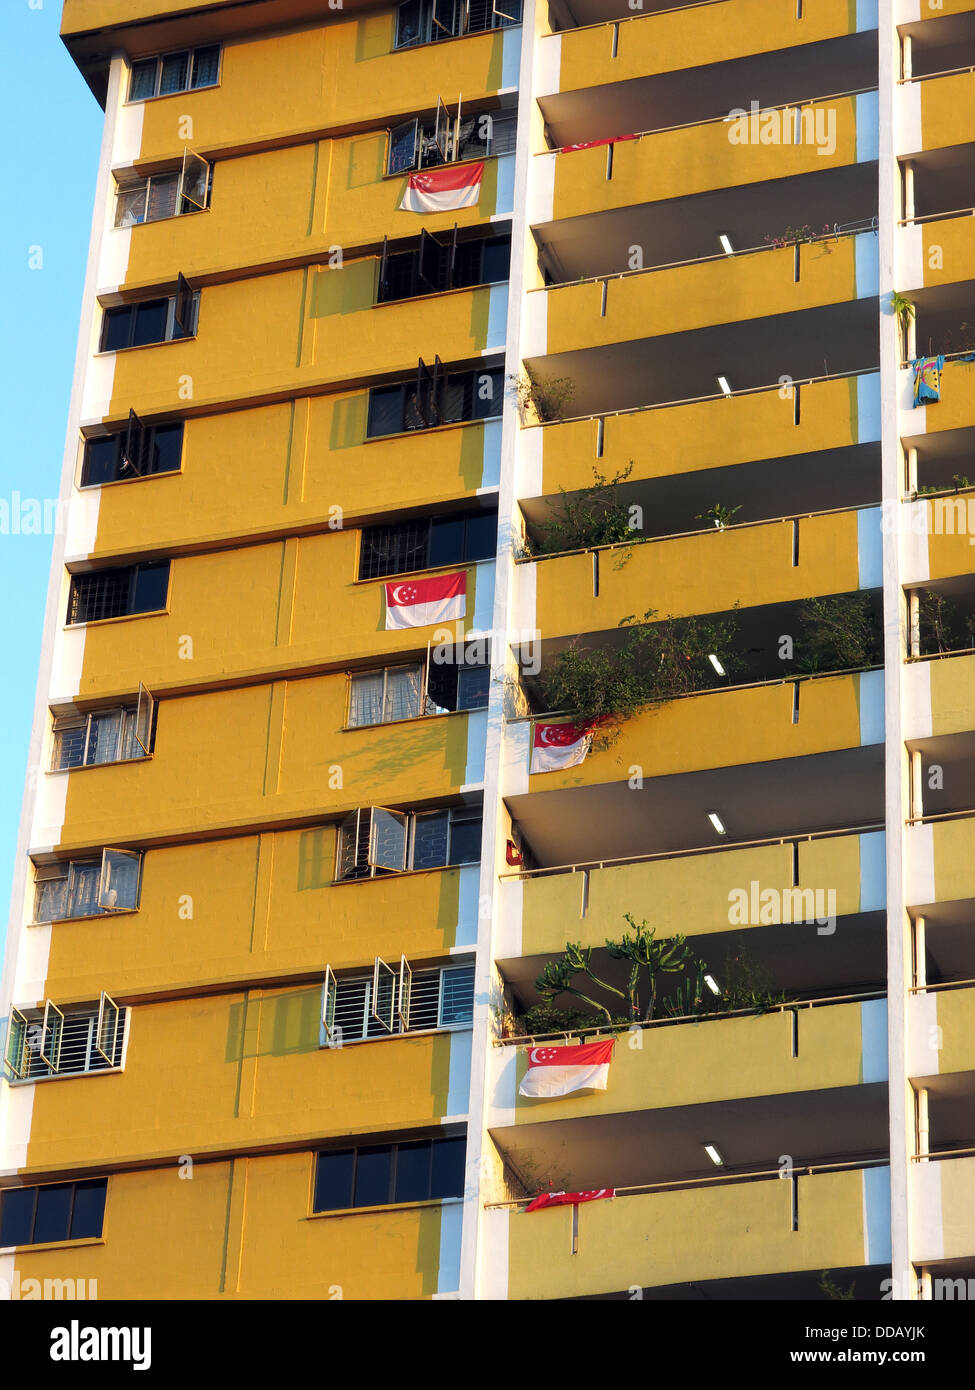 Singaporean flags hang from a Singapore apartment building Stock Photo